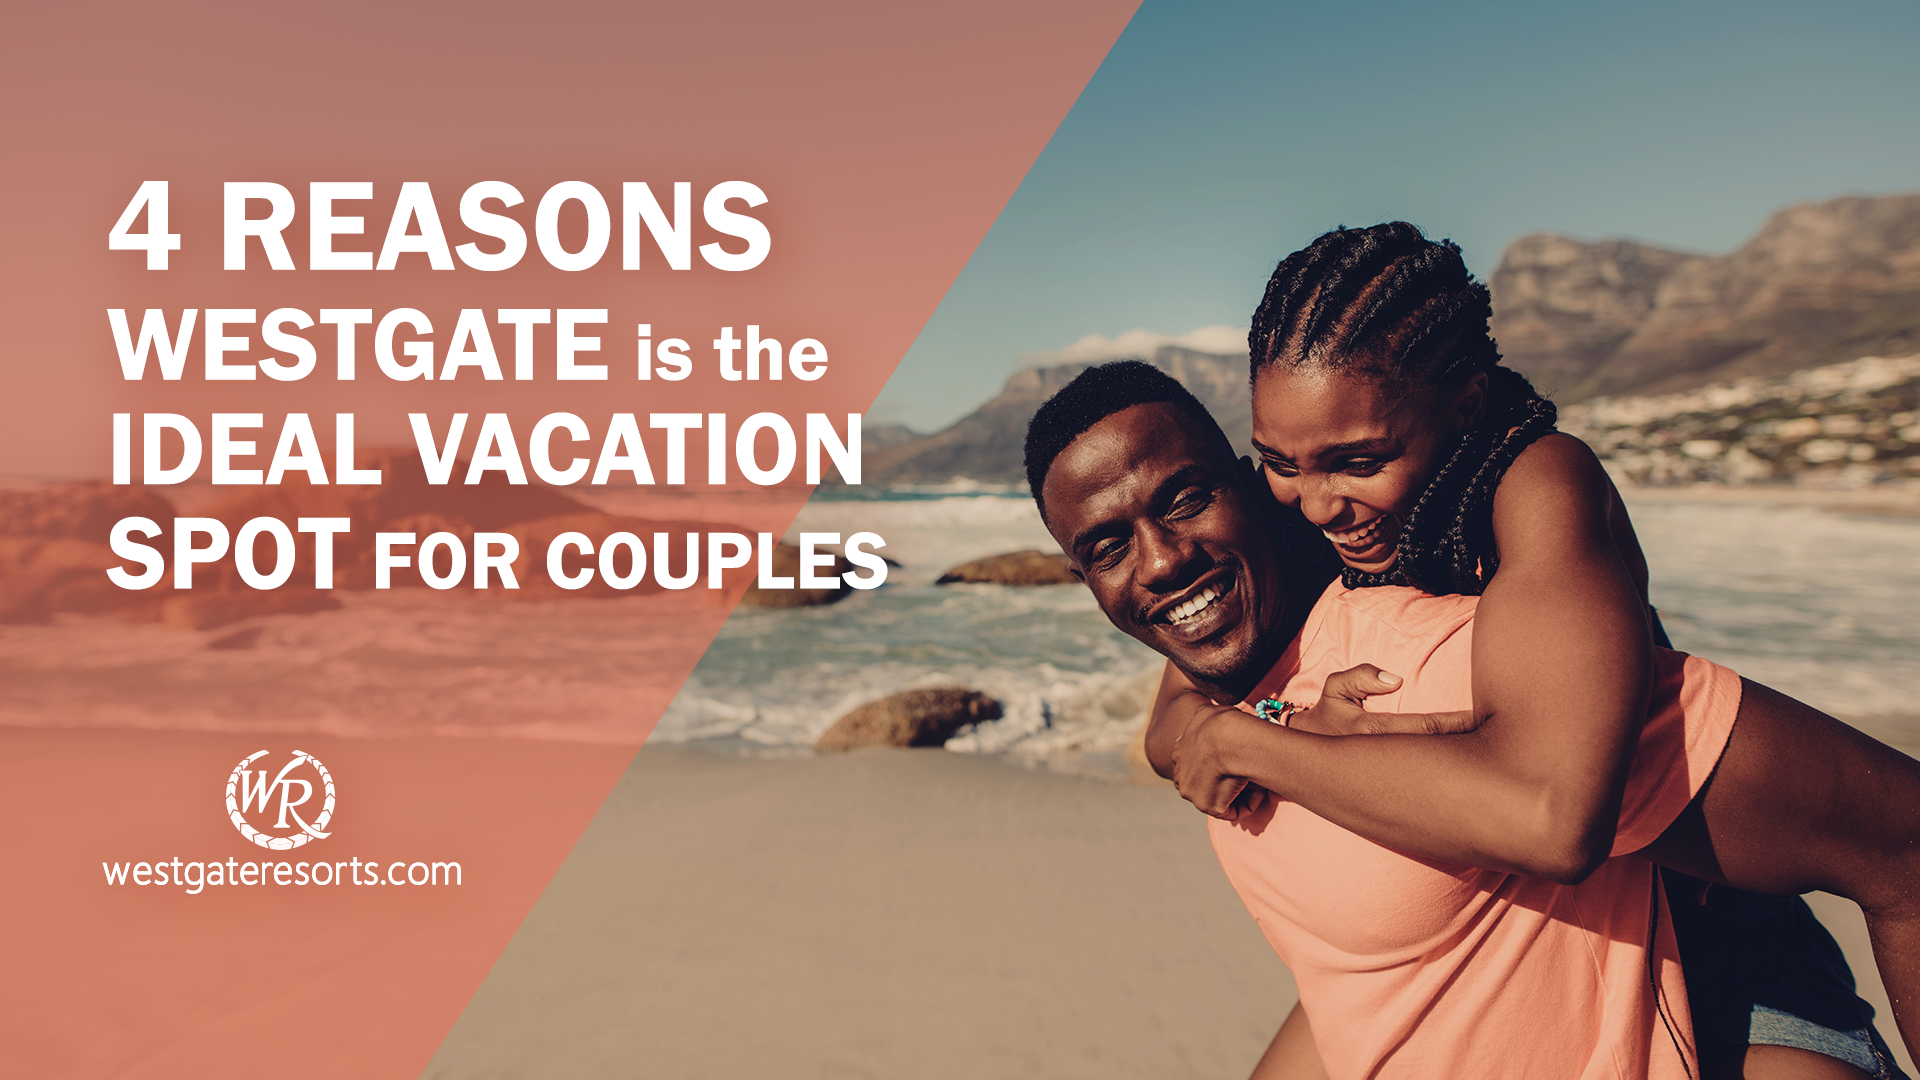 4 Reasons Westgate is the Ideal Vacation Spot for Couples | Westgate Resorts